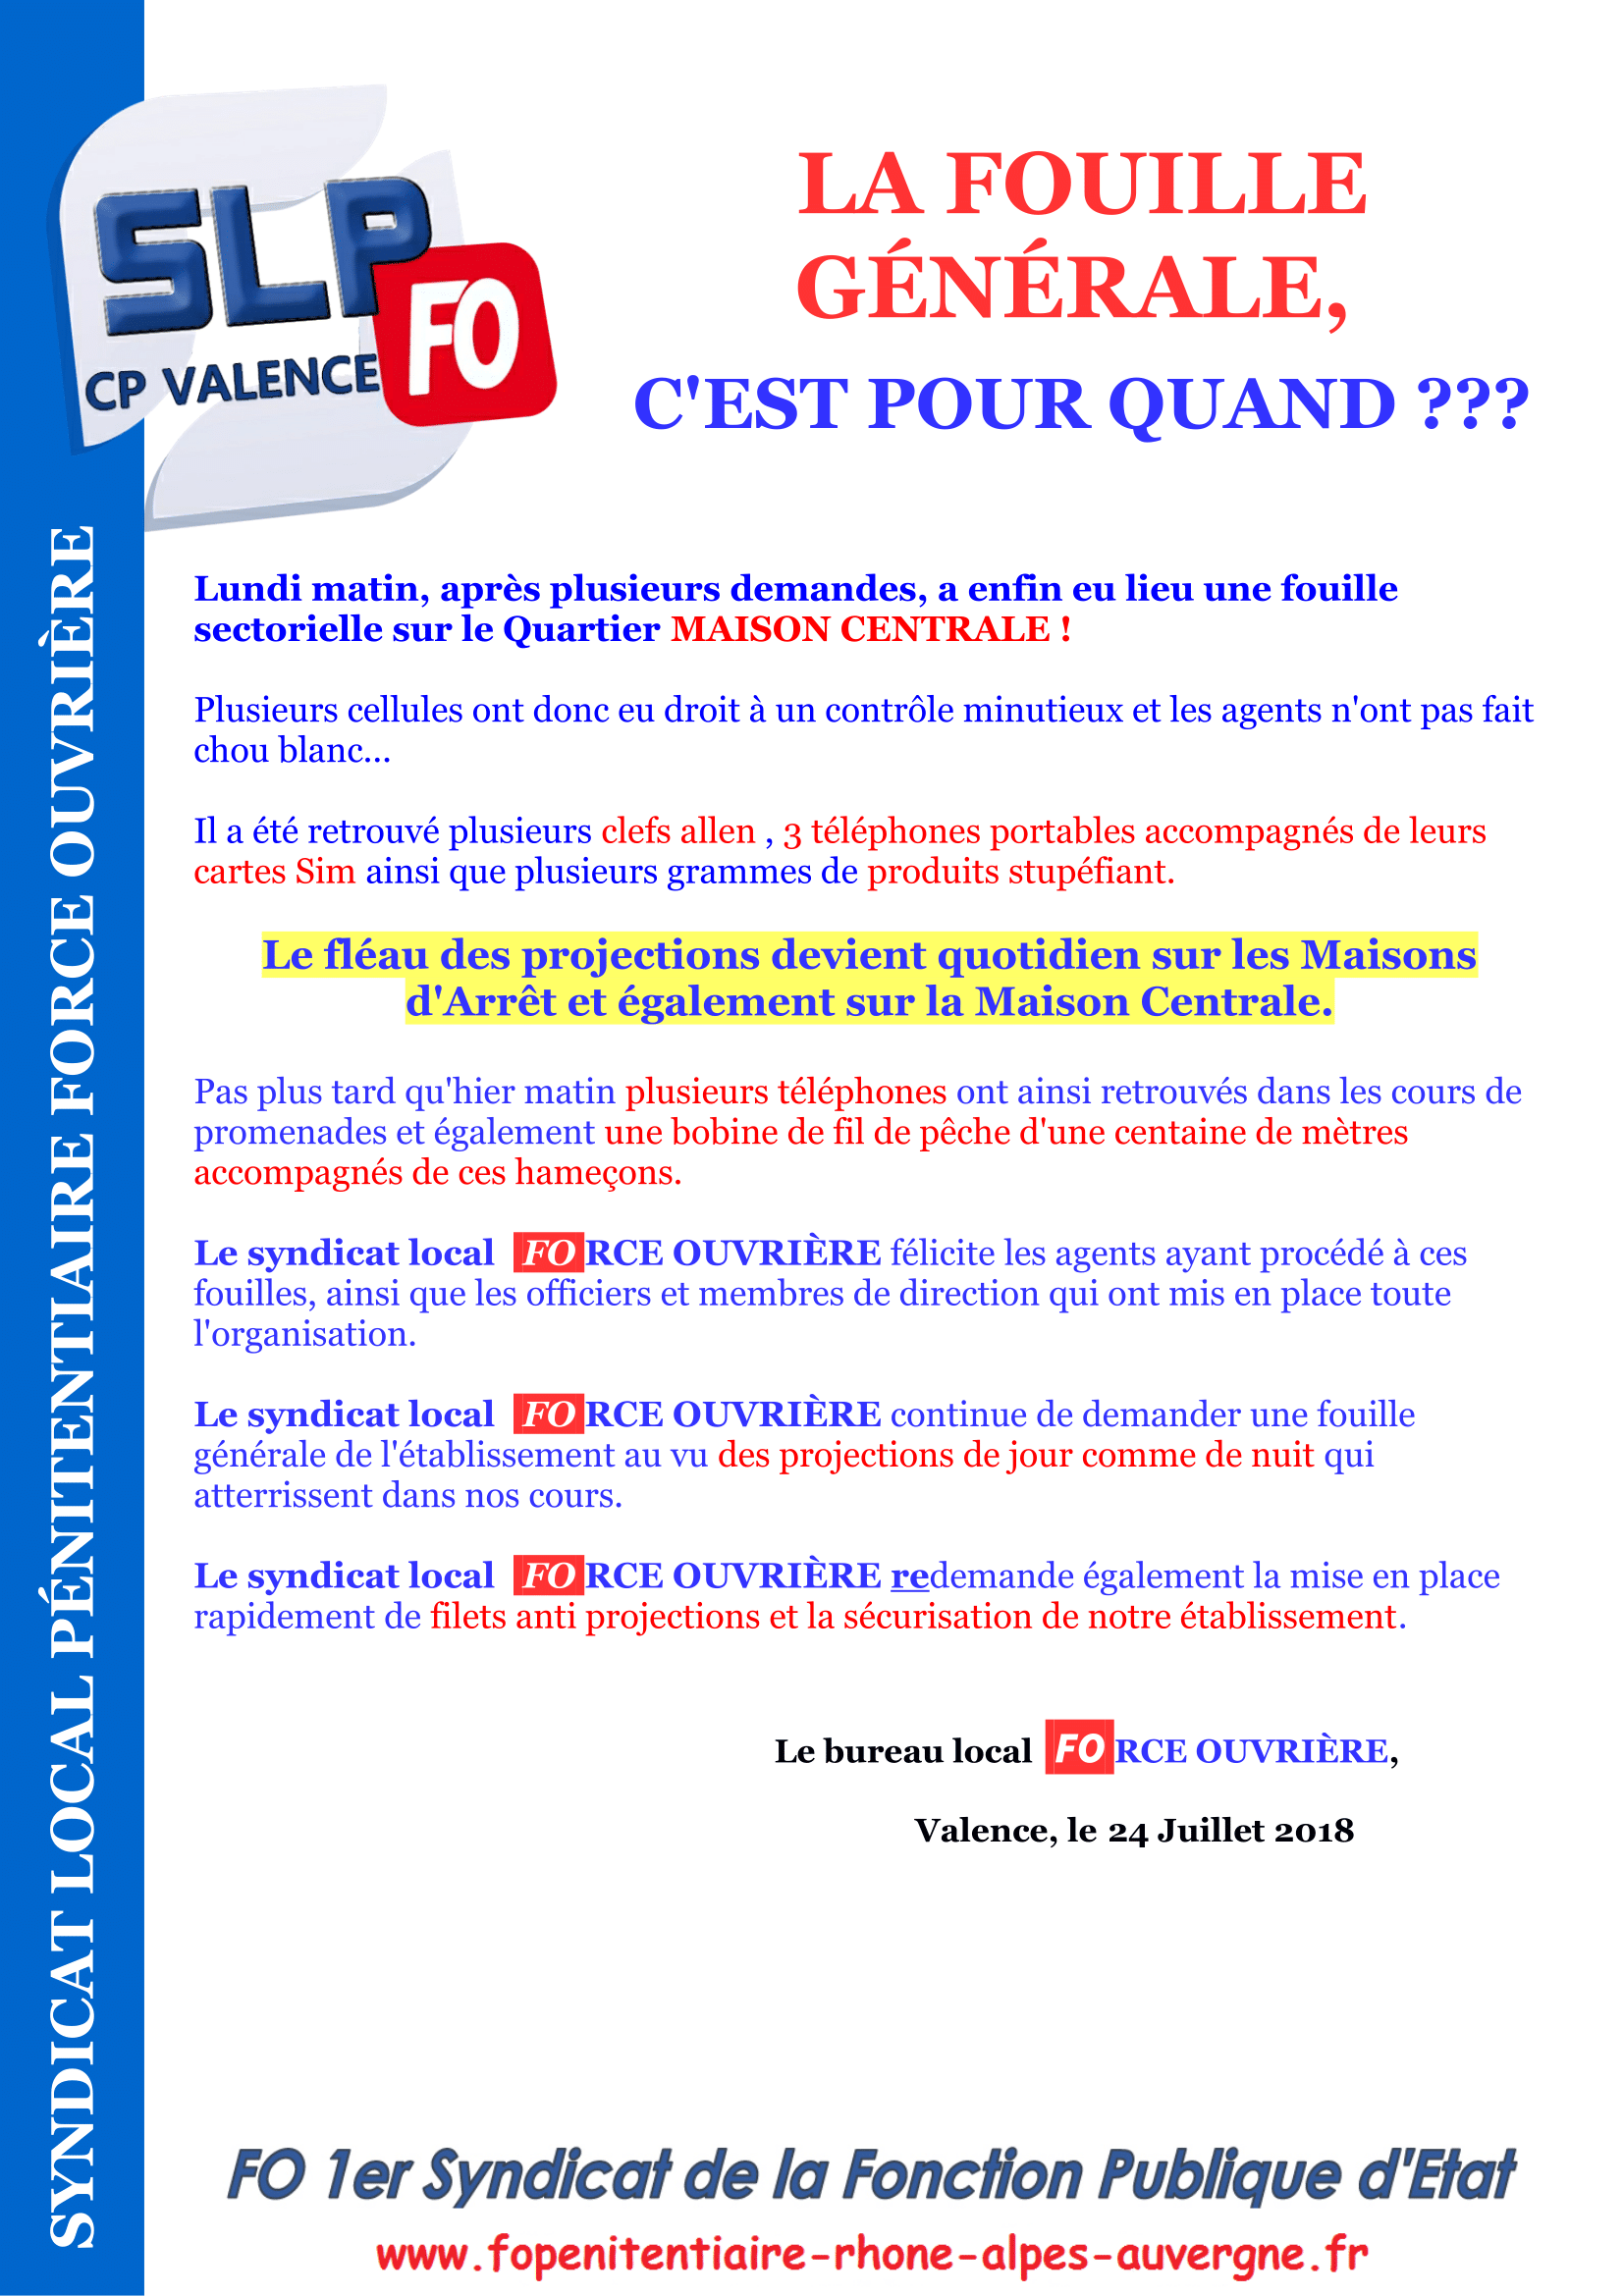 Tract CP VALENCE fouille-1